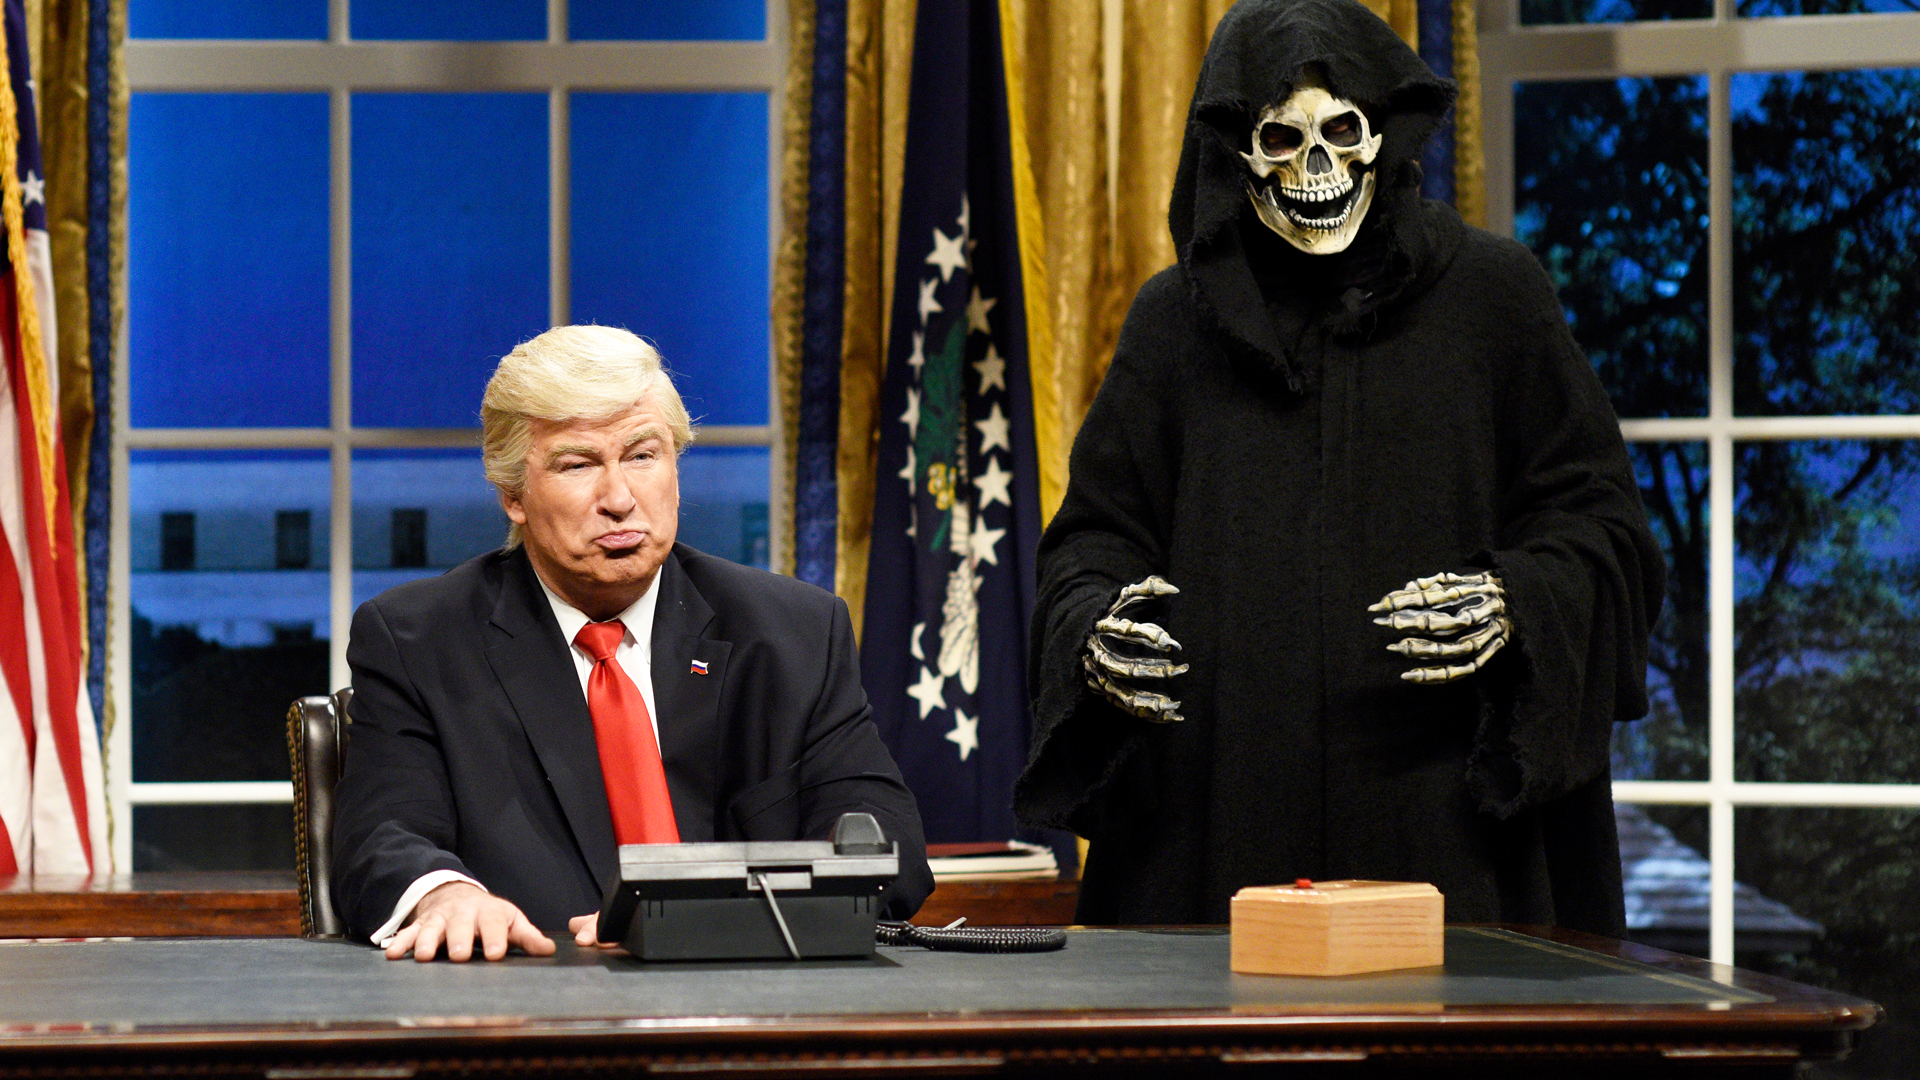 Watch Oval Office Open From Saturday Night Live - NBC.com